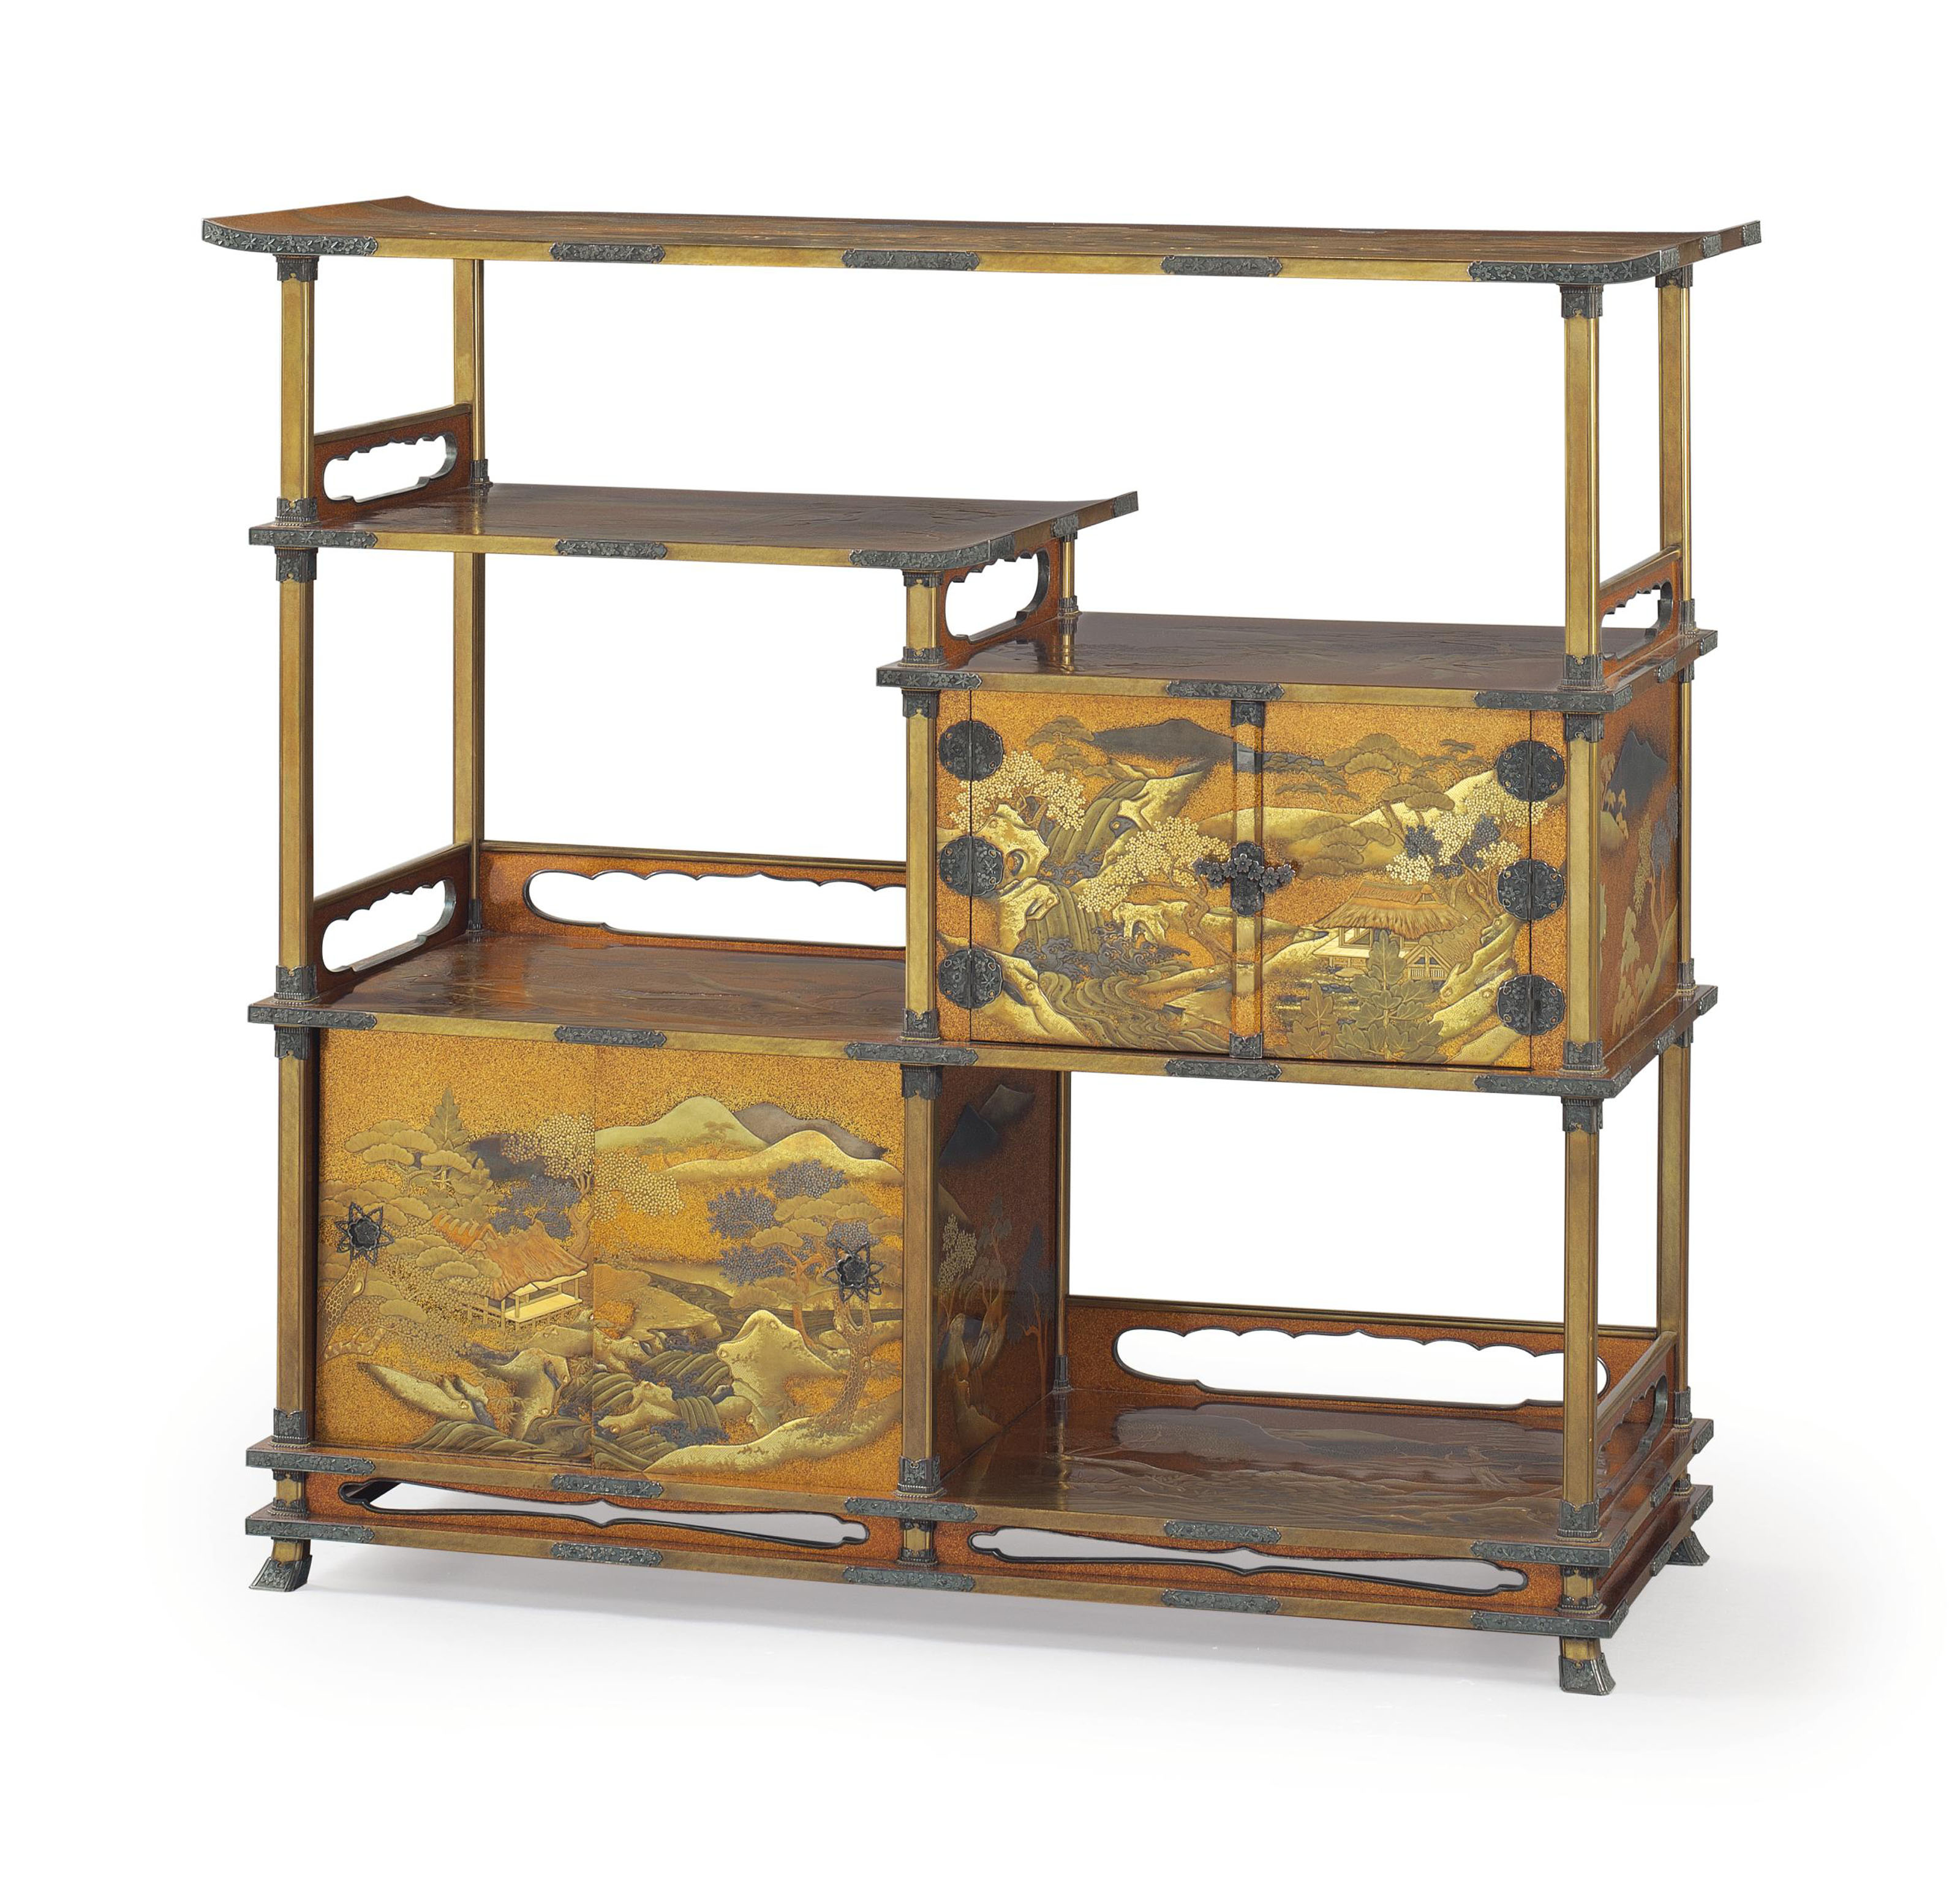 A gold lacquer display cabinet